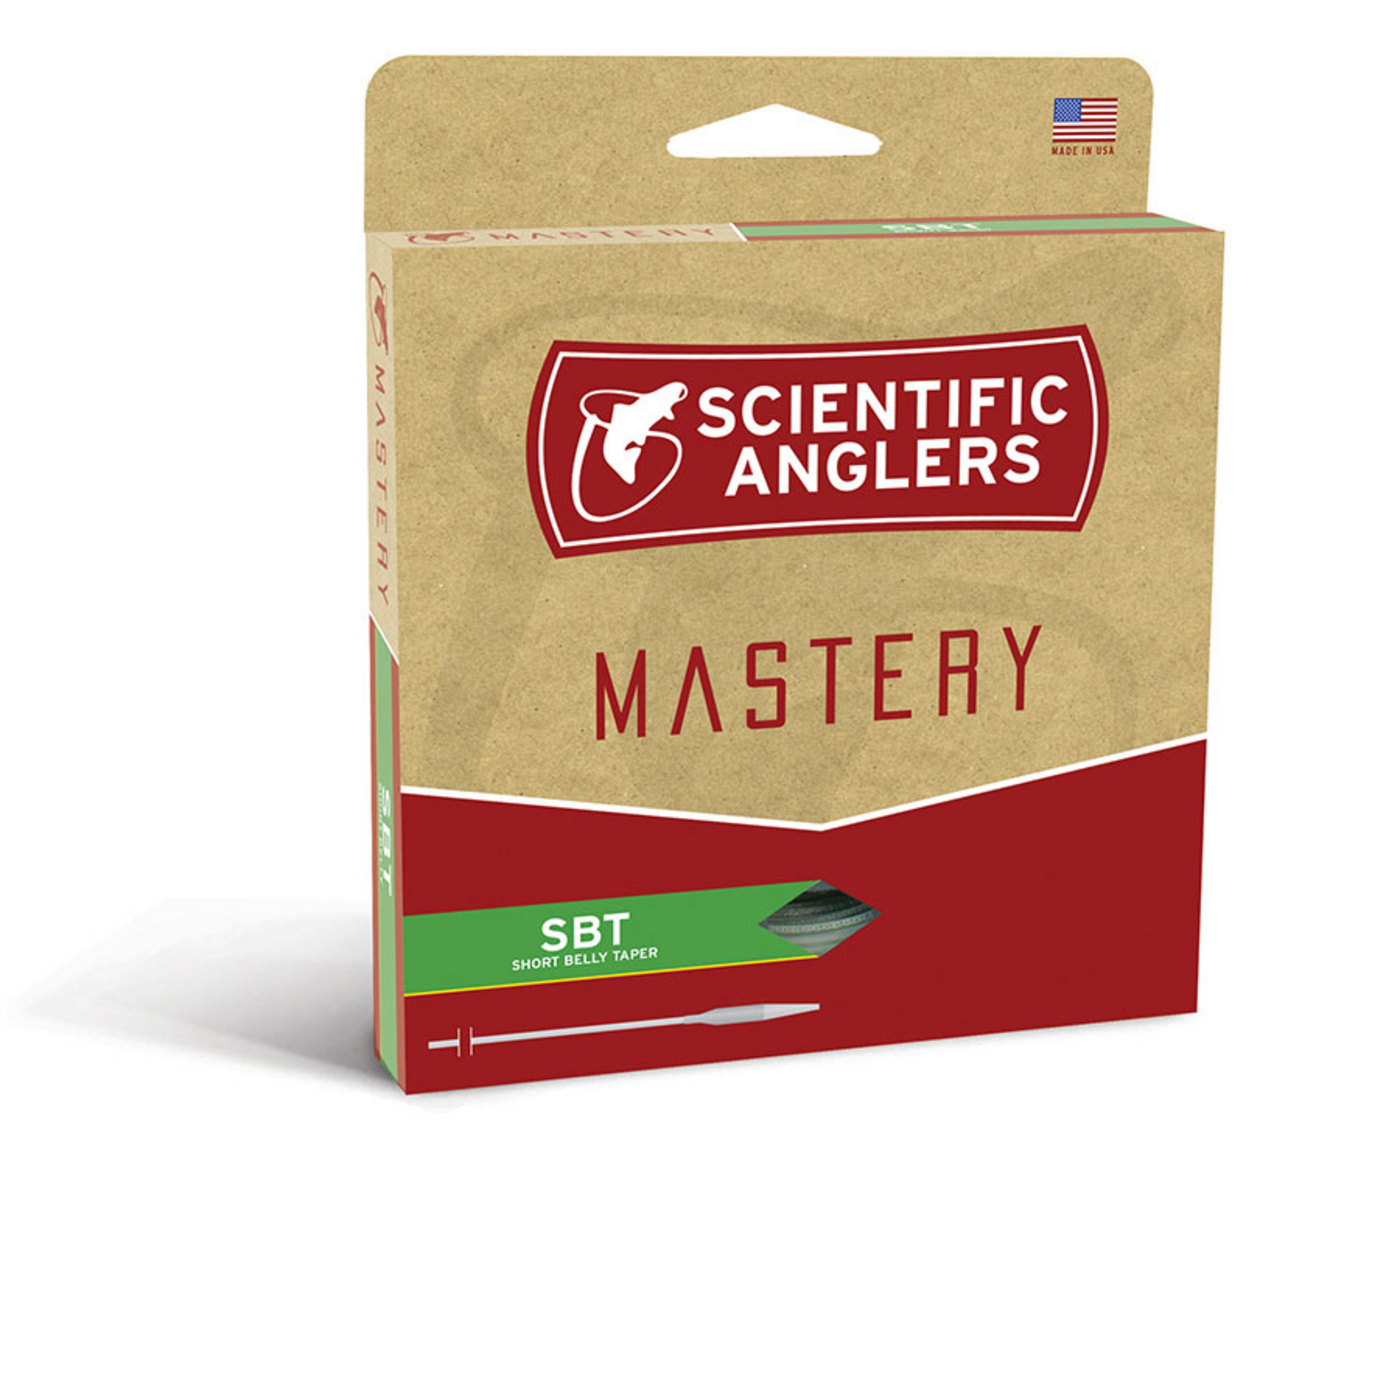 Scientific Anglers Mastery Short Belly Taper Fly Line with Loop WF3F